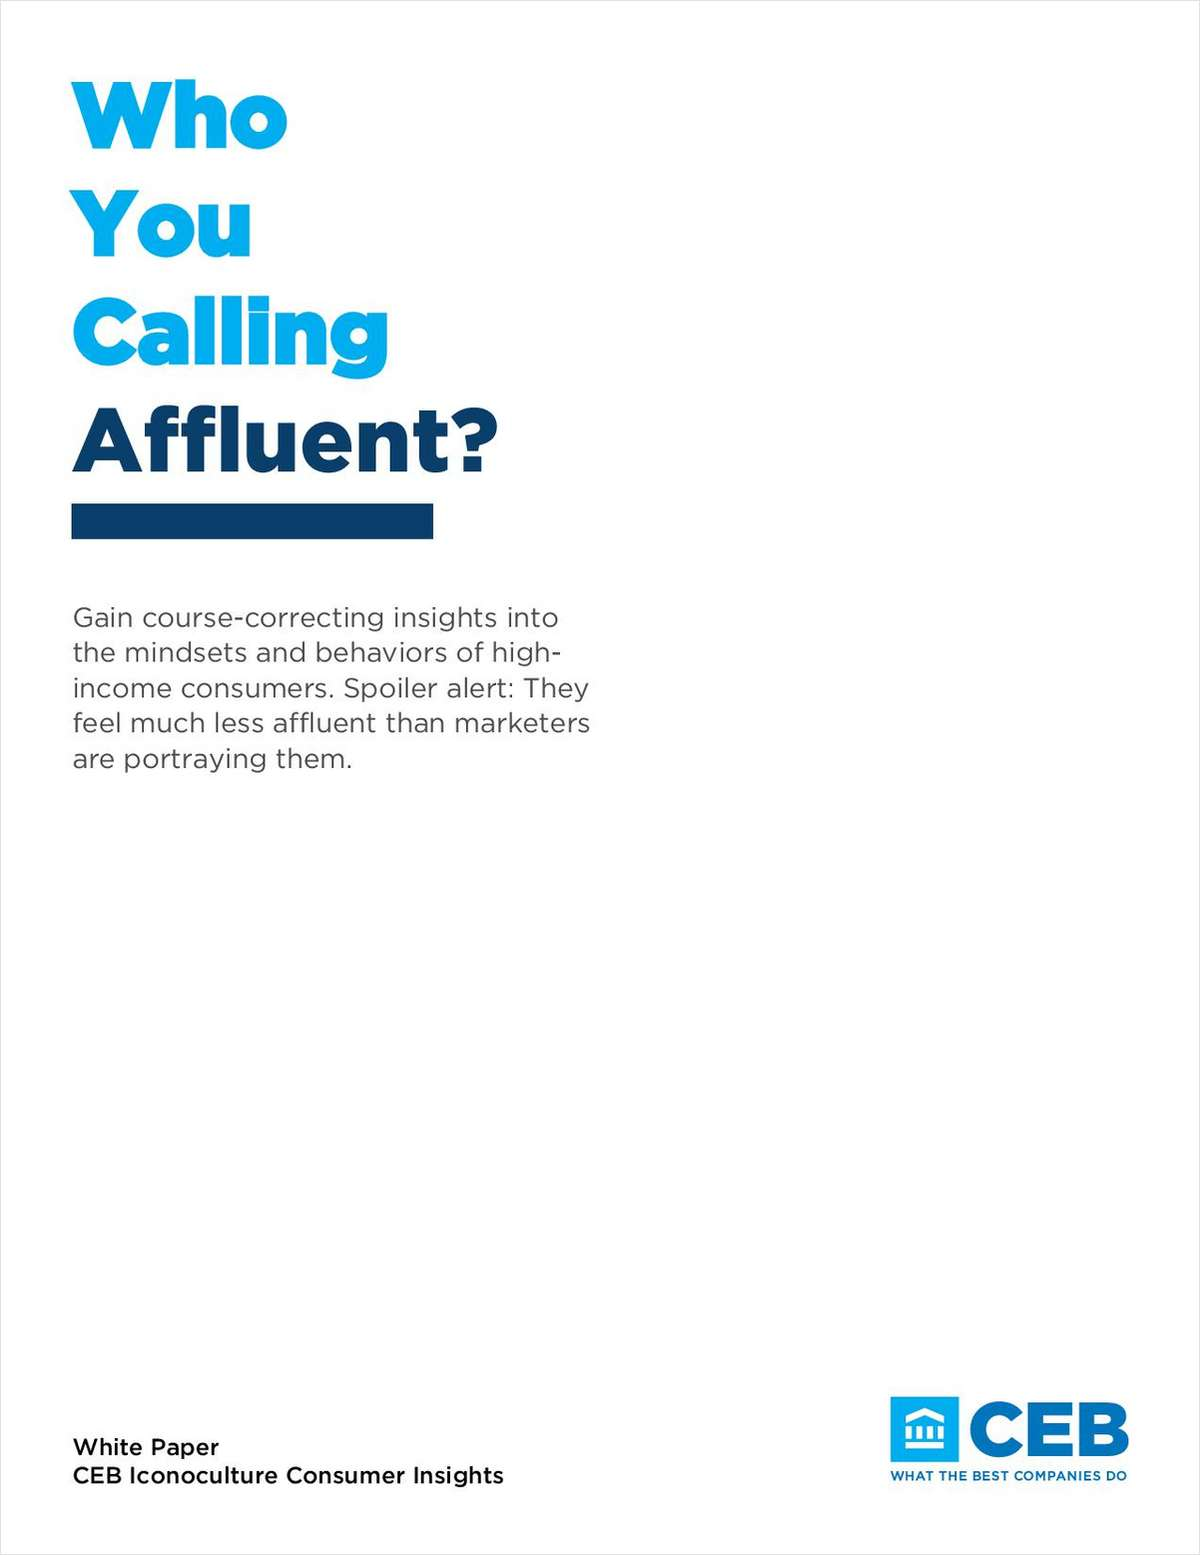 Who You Calling Affluent?